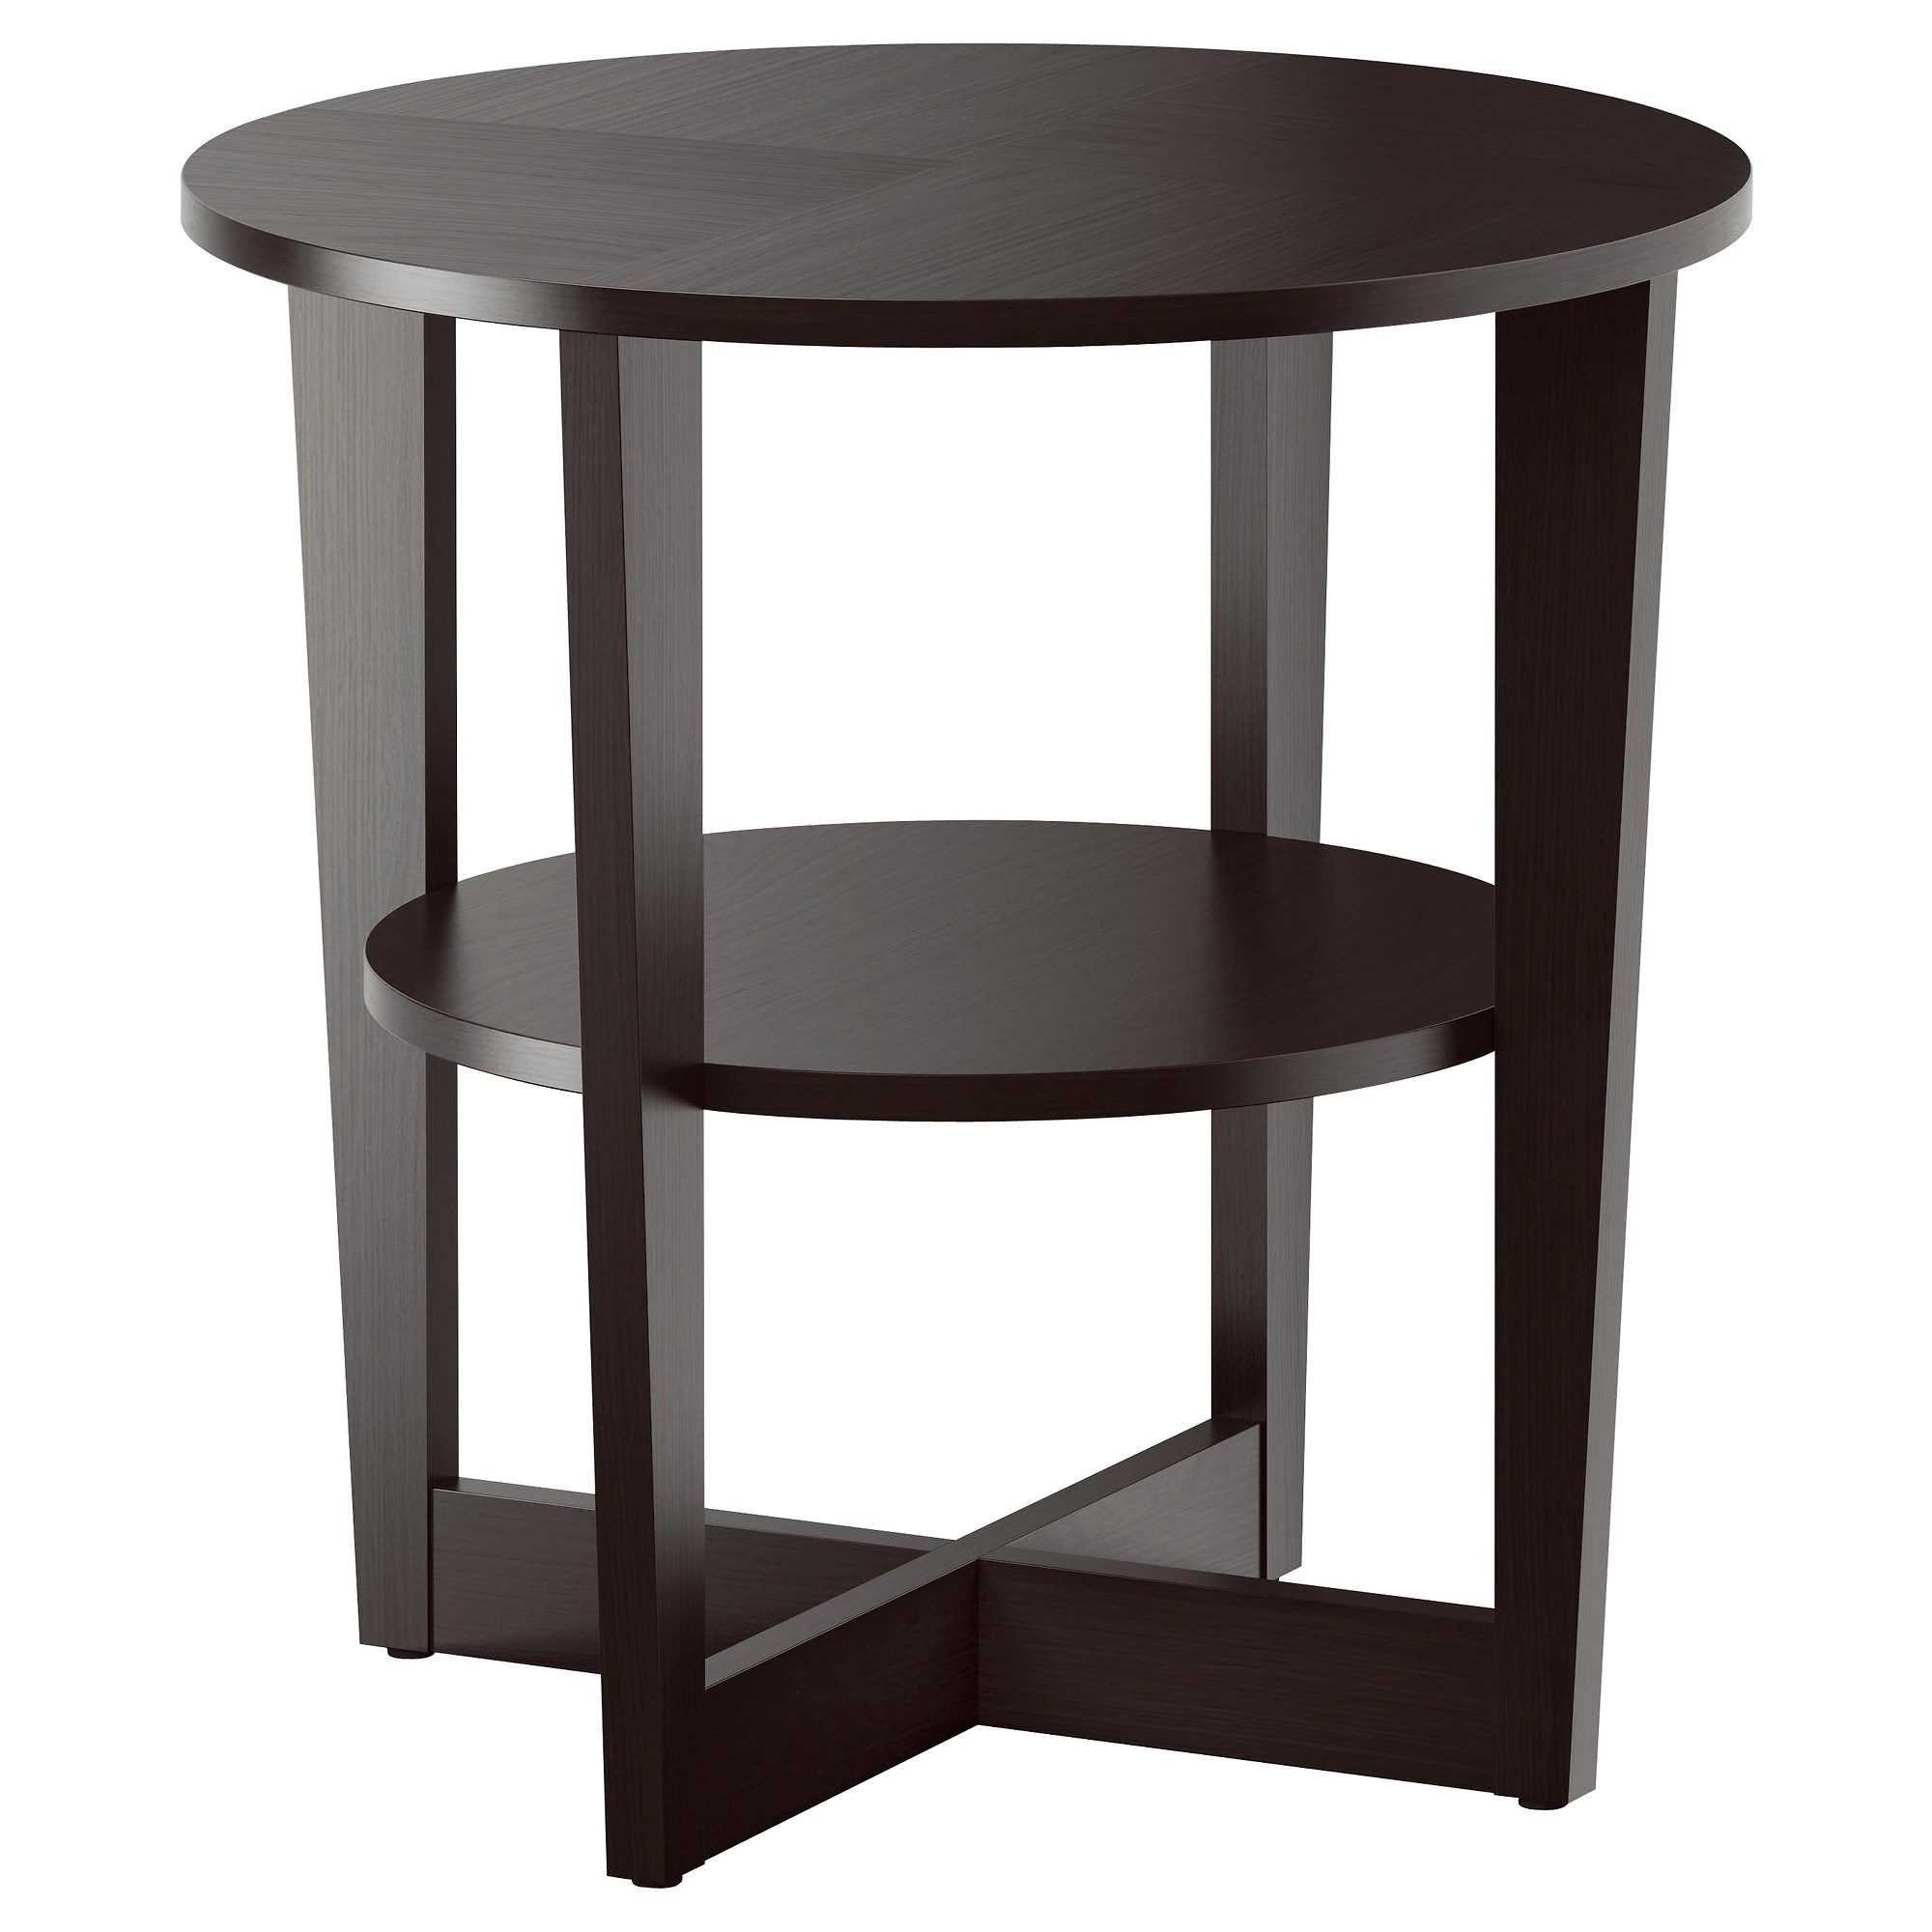 Table D'appoint Ikea Vejmon Side Table Black Brown